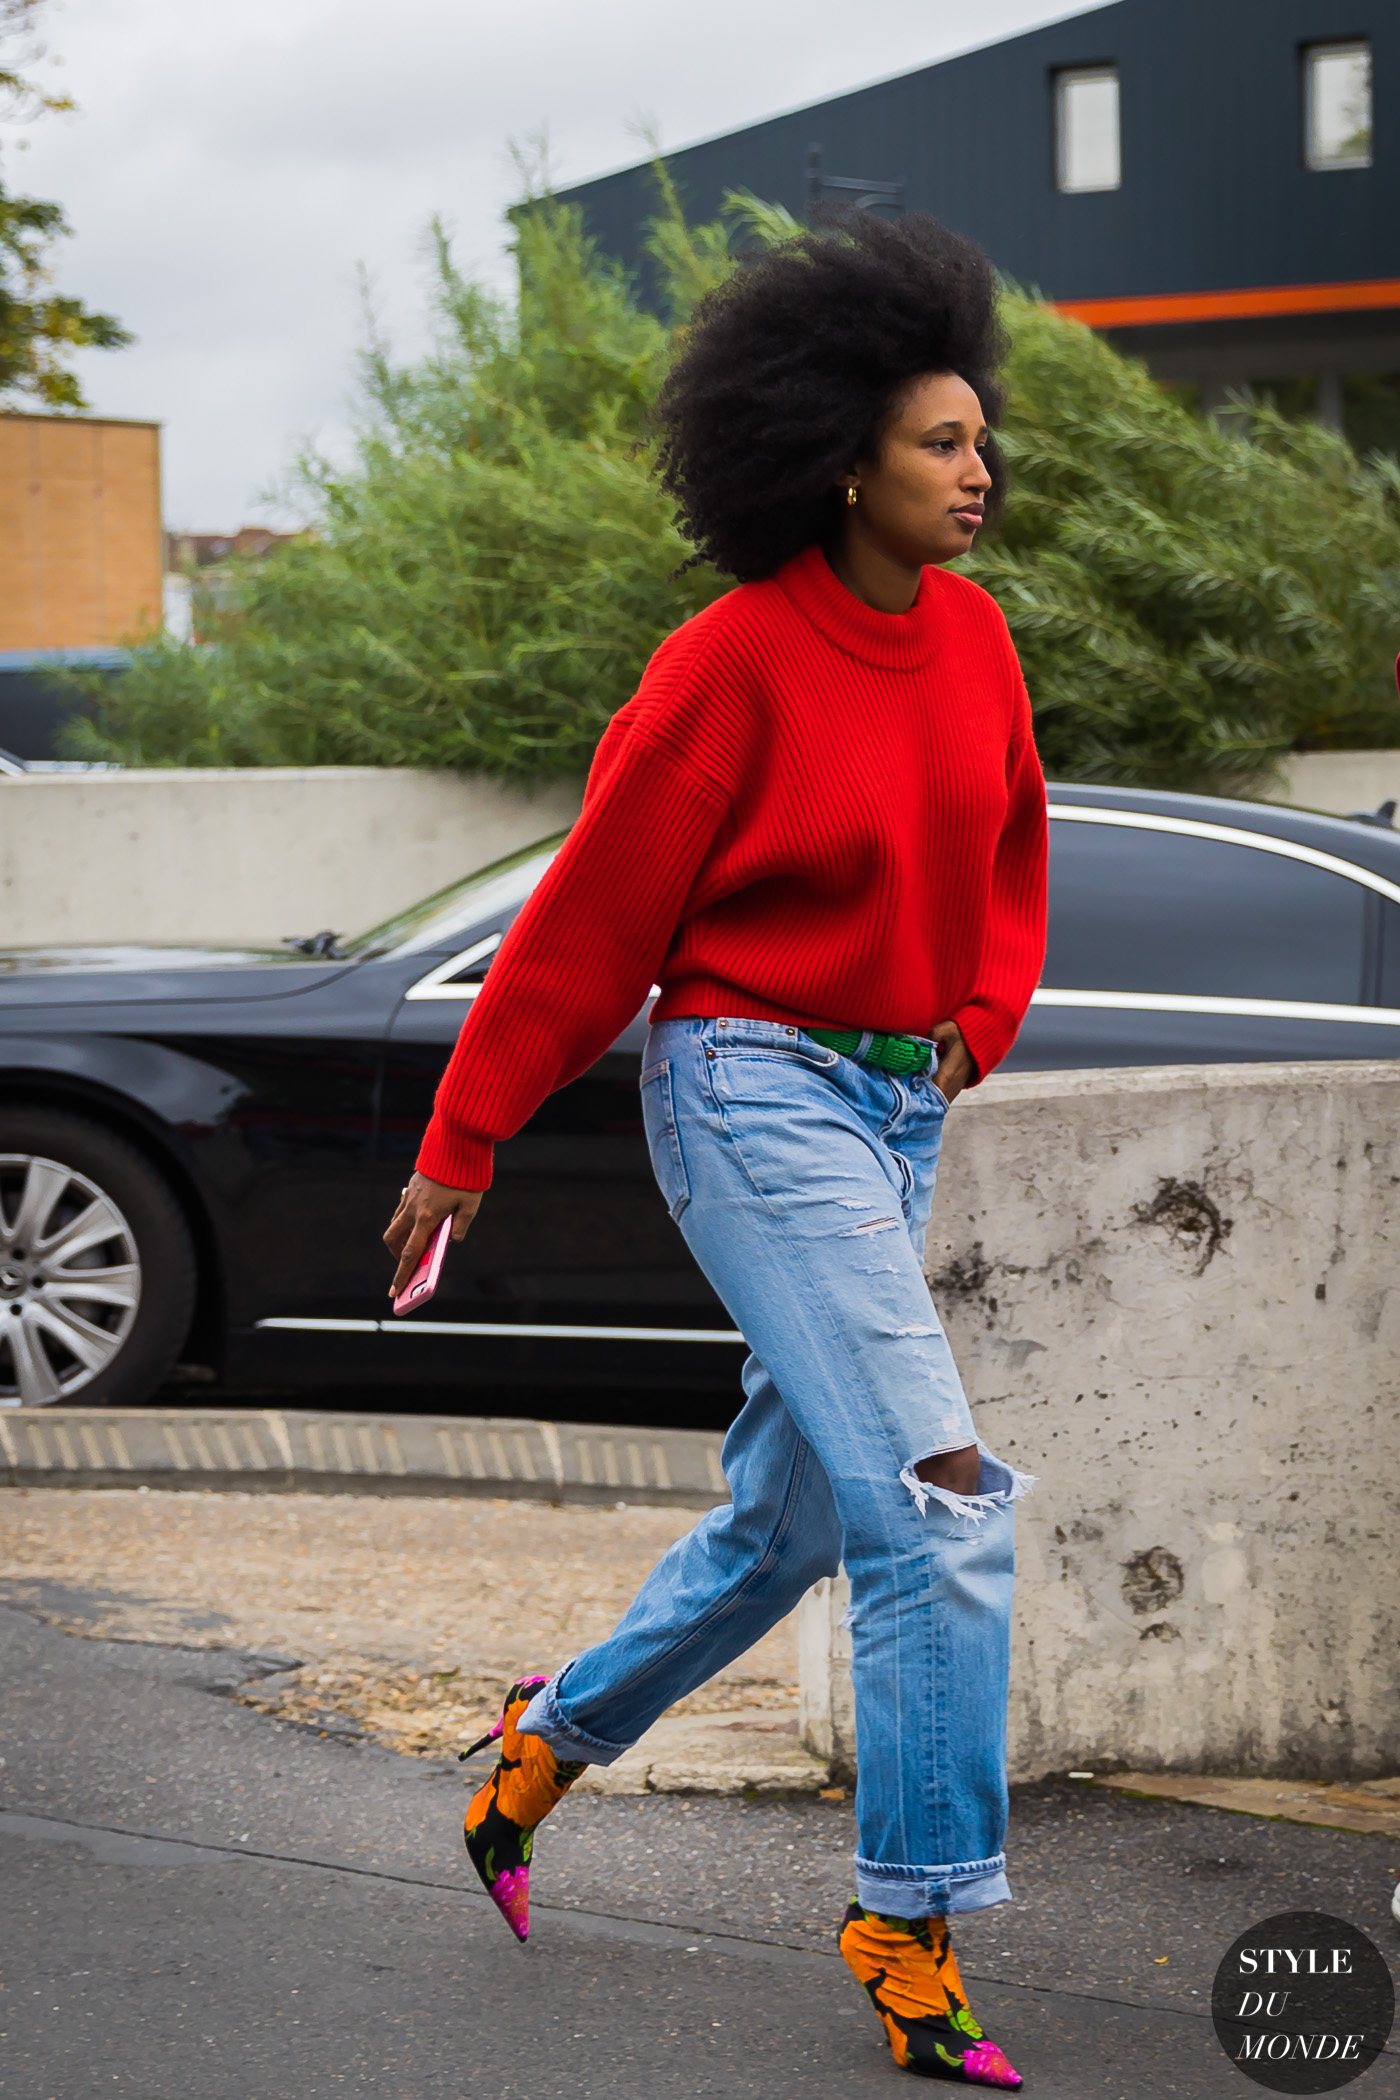 Julia Sarr Jamois by STYLEDUMONDE Street Style Fashion Photography_48A7268